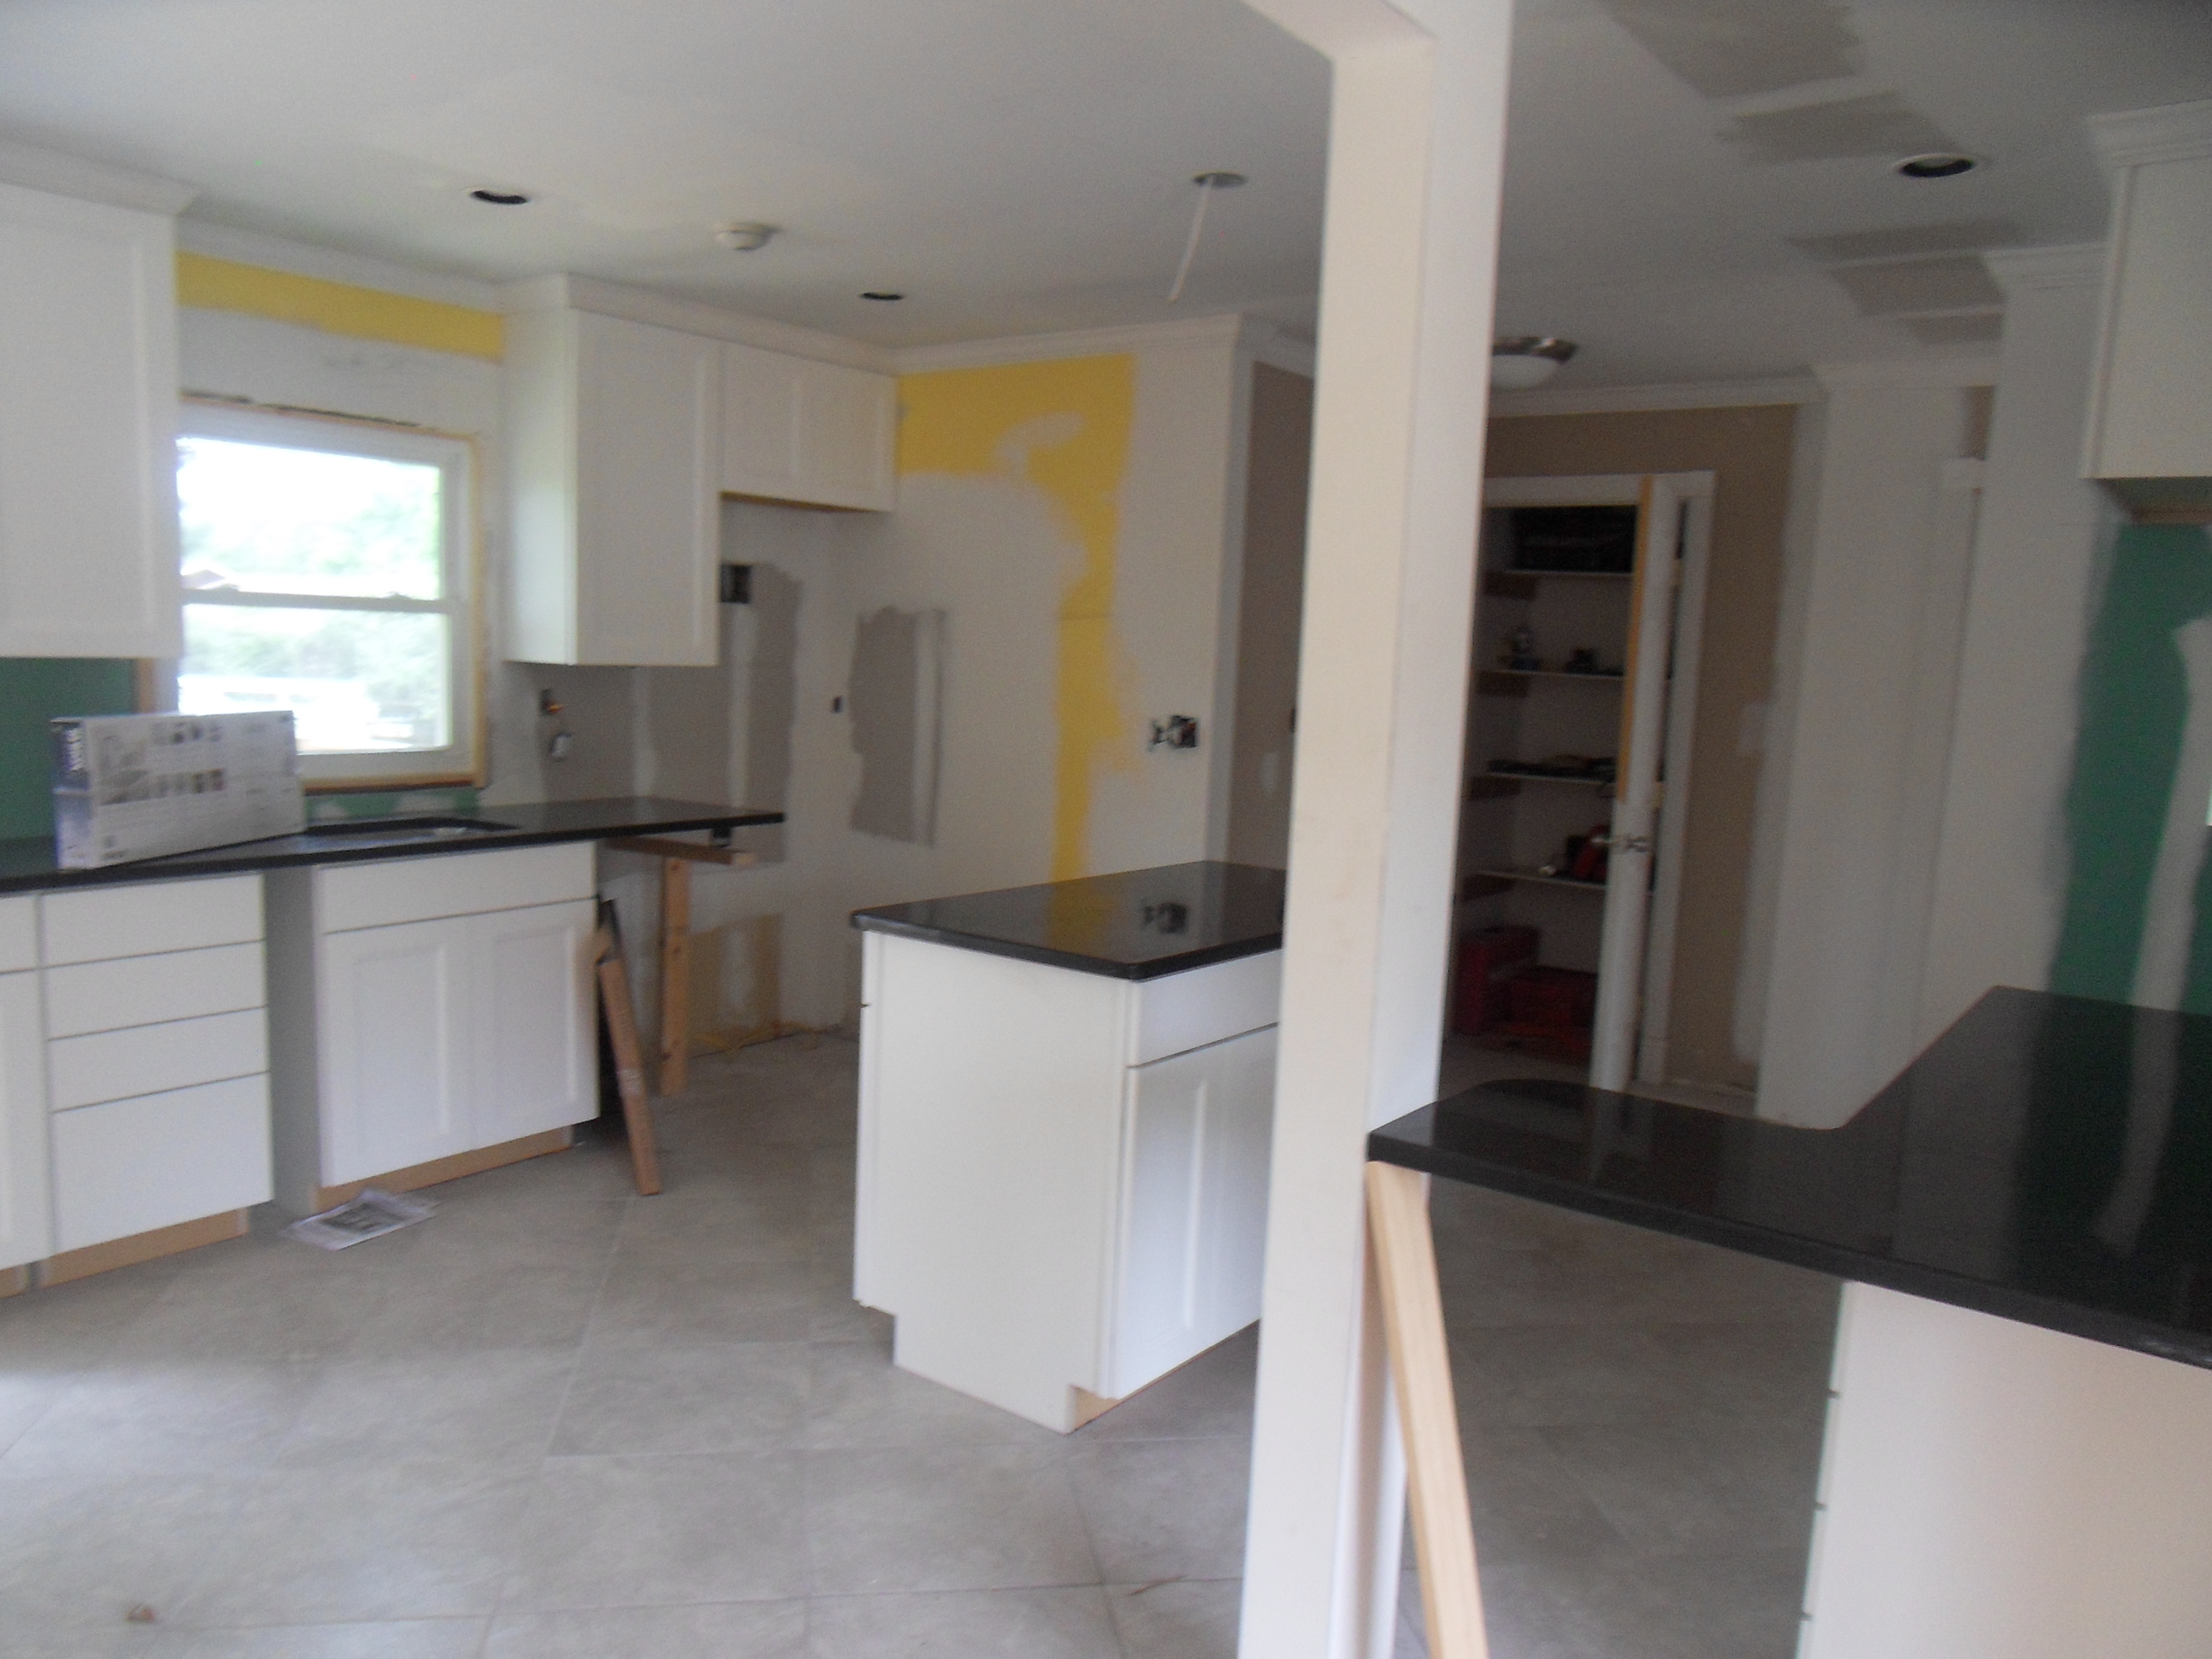 Kitchen during home renovations